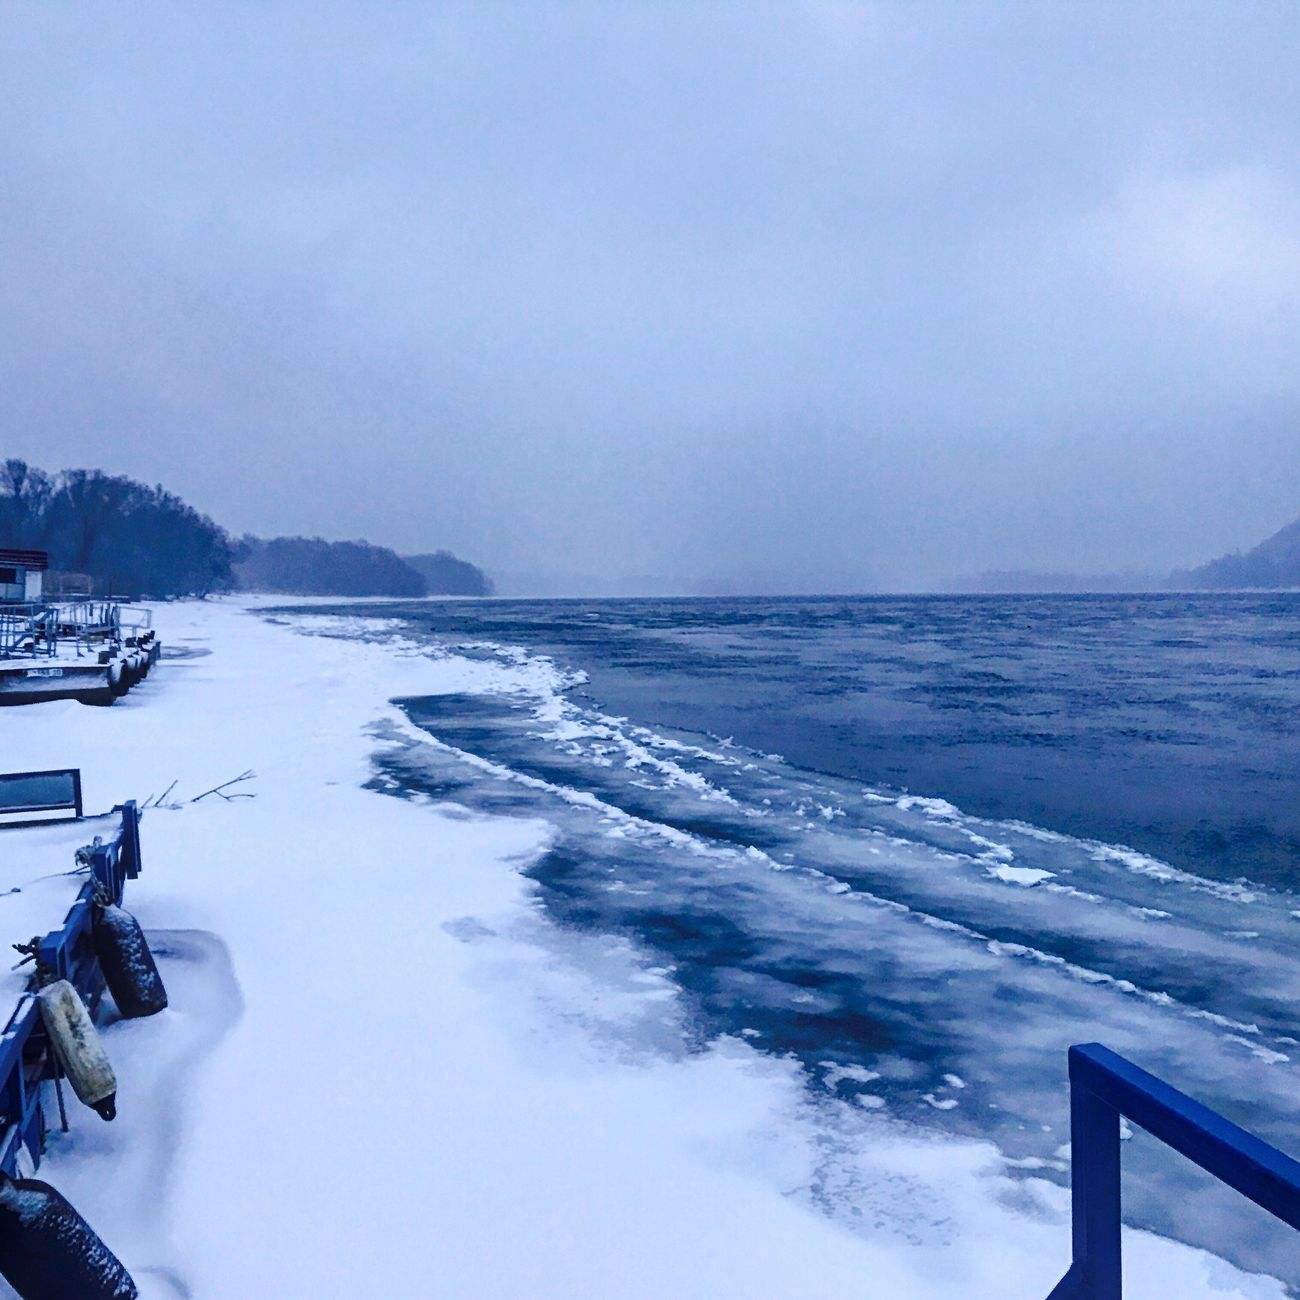 Sea Water Nature Beauty In Nature Winter Hungary Hello World Day MyPhotography Hi! Hello Nature EyeEm Nature Lover Eye4photography